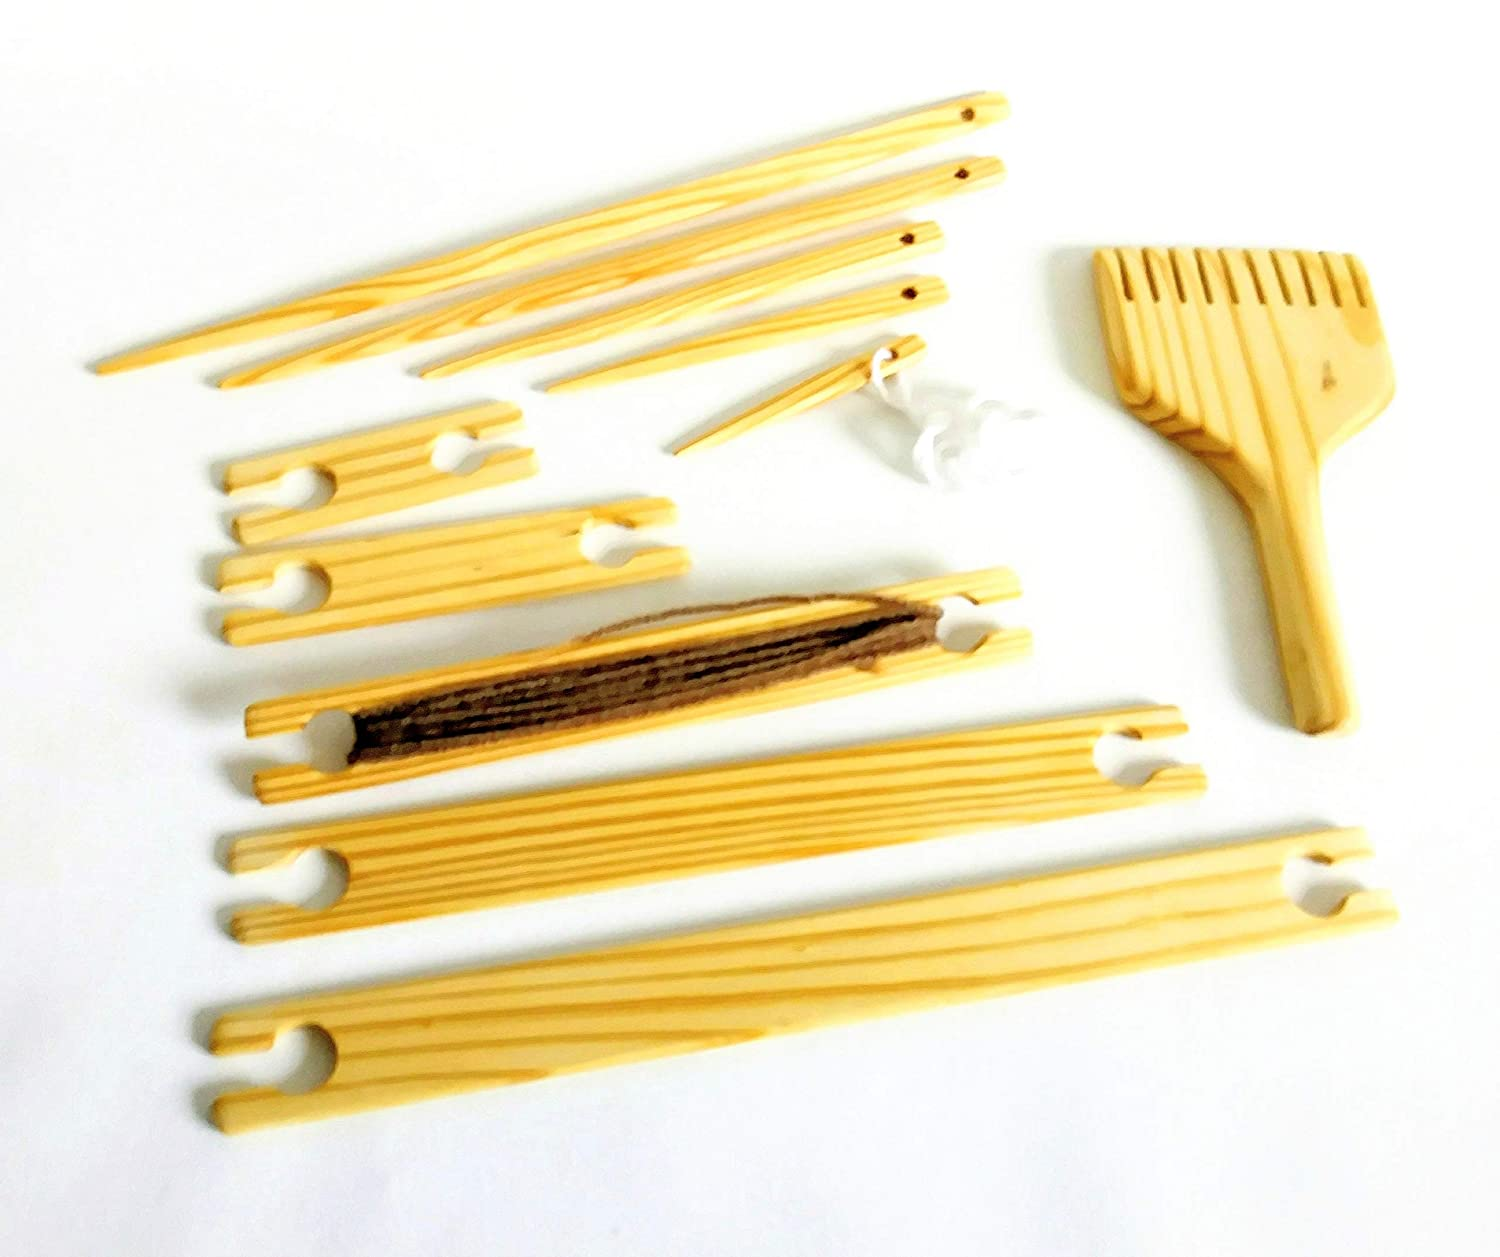 11 Piece Weaving Tapestry Beater Kit with shuttles 4, 6, 8, 10, 12 inches Needles 4, 6, 8, 12, 14 QualityCraftsNC